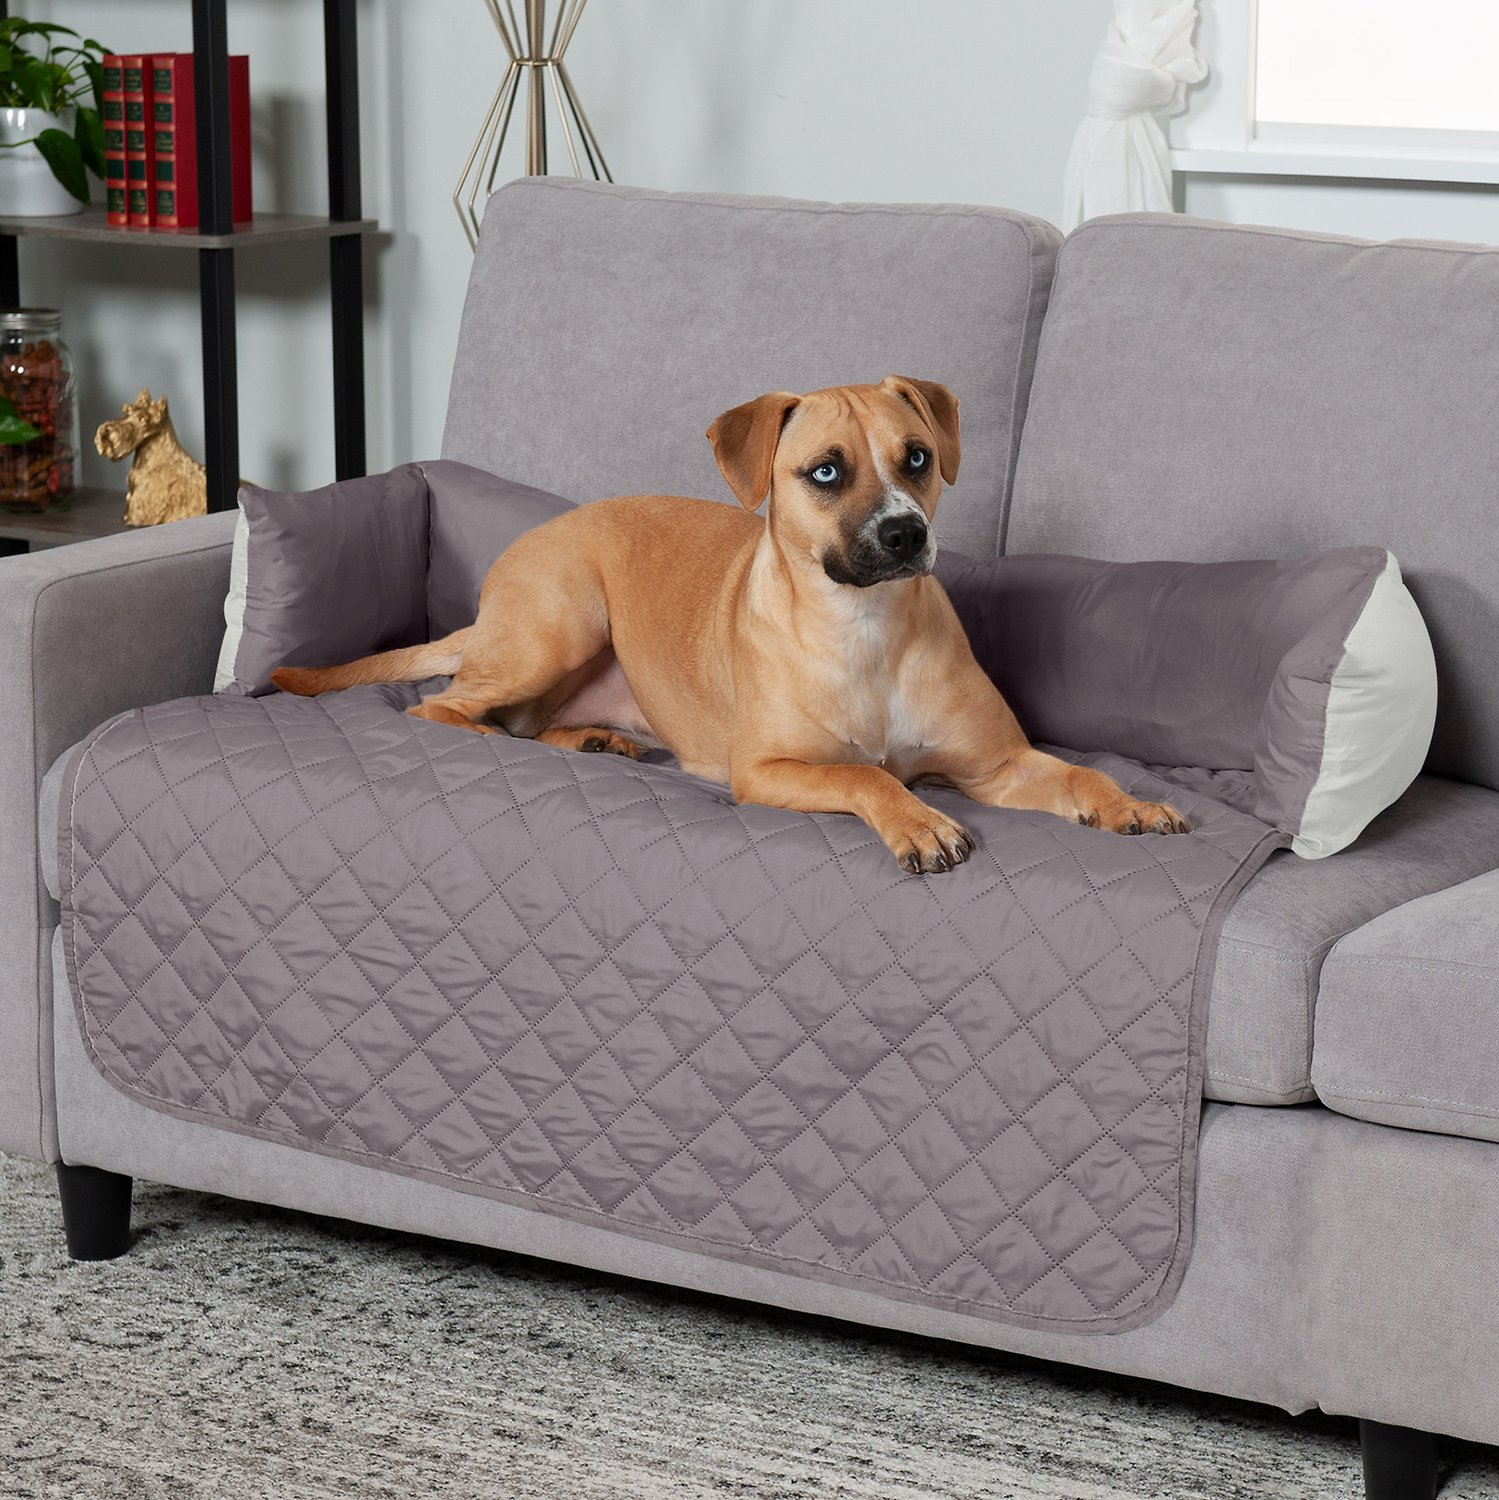 Furhaven sofa buddy dog cat bed furniture cover